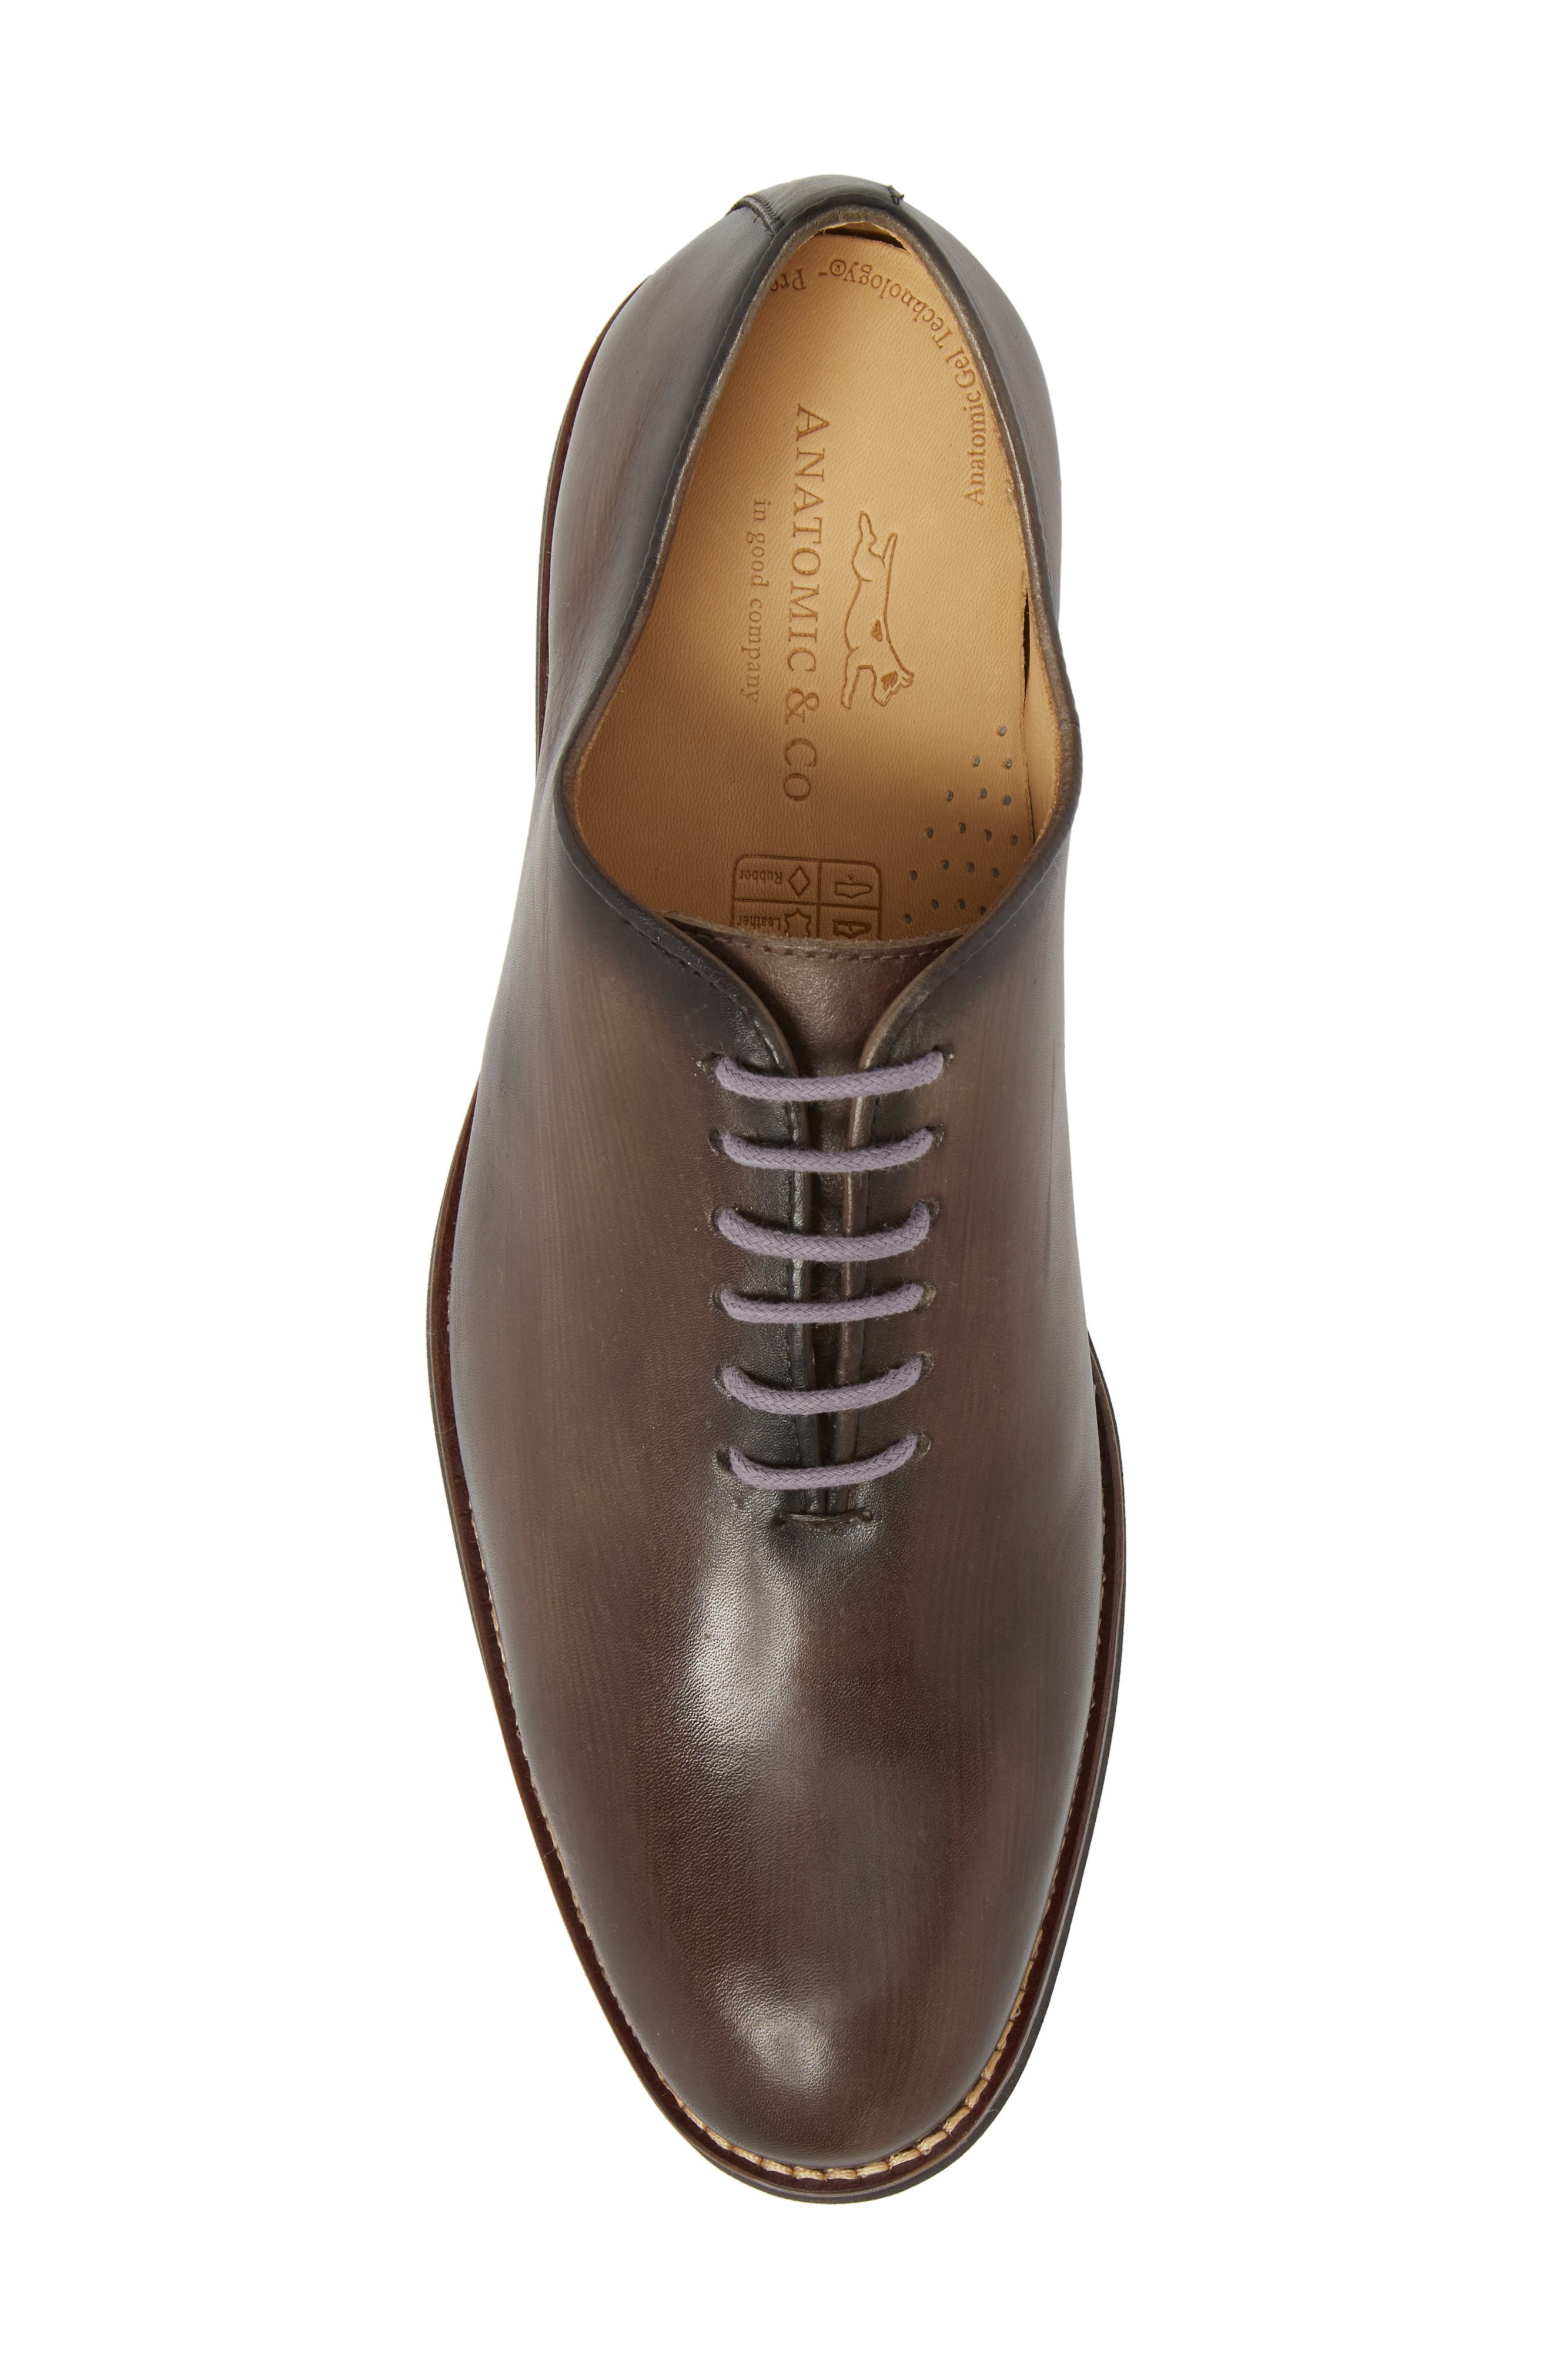 Sao Paulo II Whole Cut Shoe,                             Alternate thumbnail 5, color,                             TOUCH GREY BRUSHED LEATHER